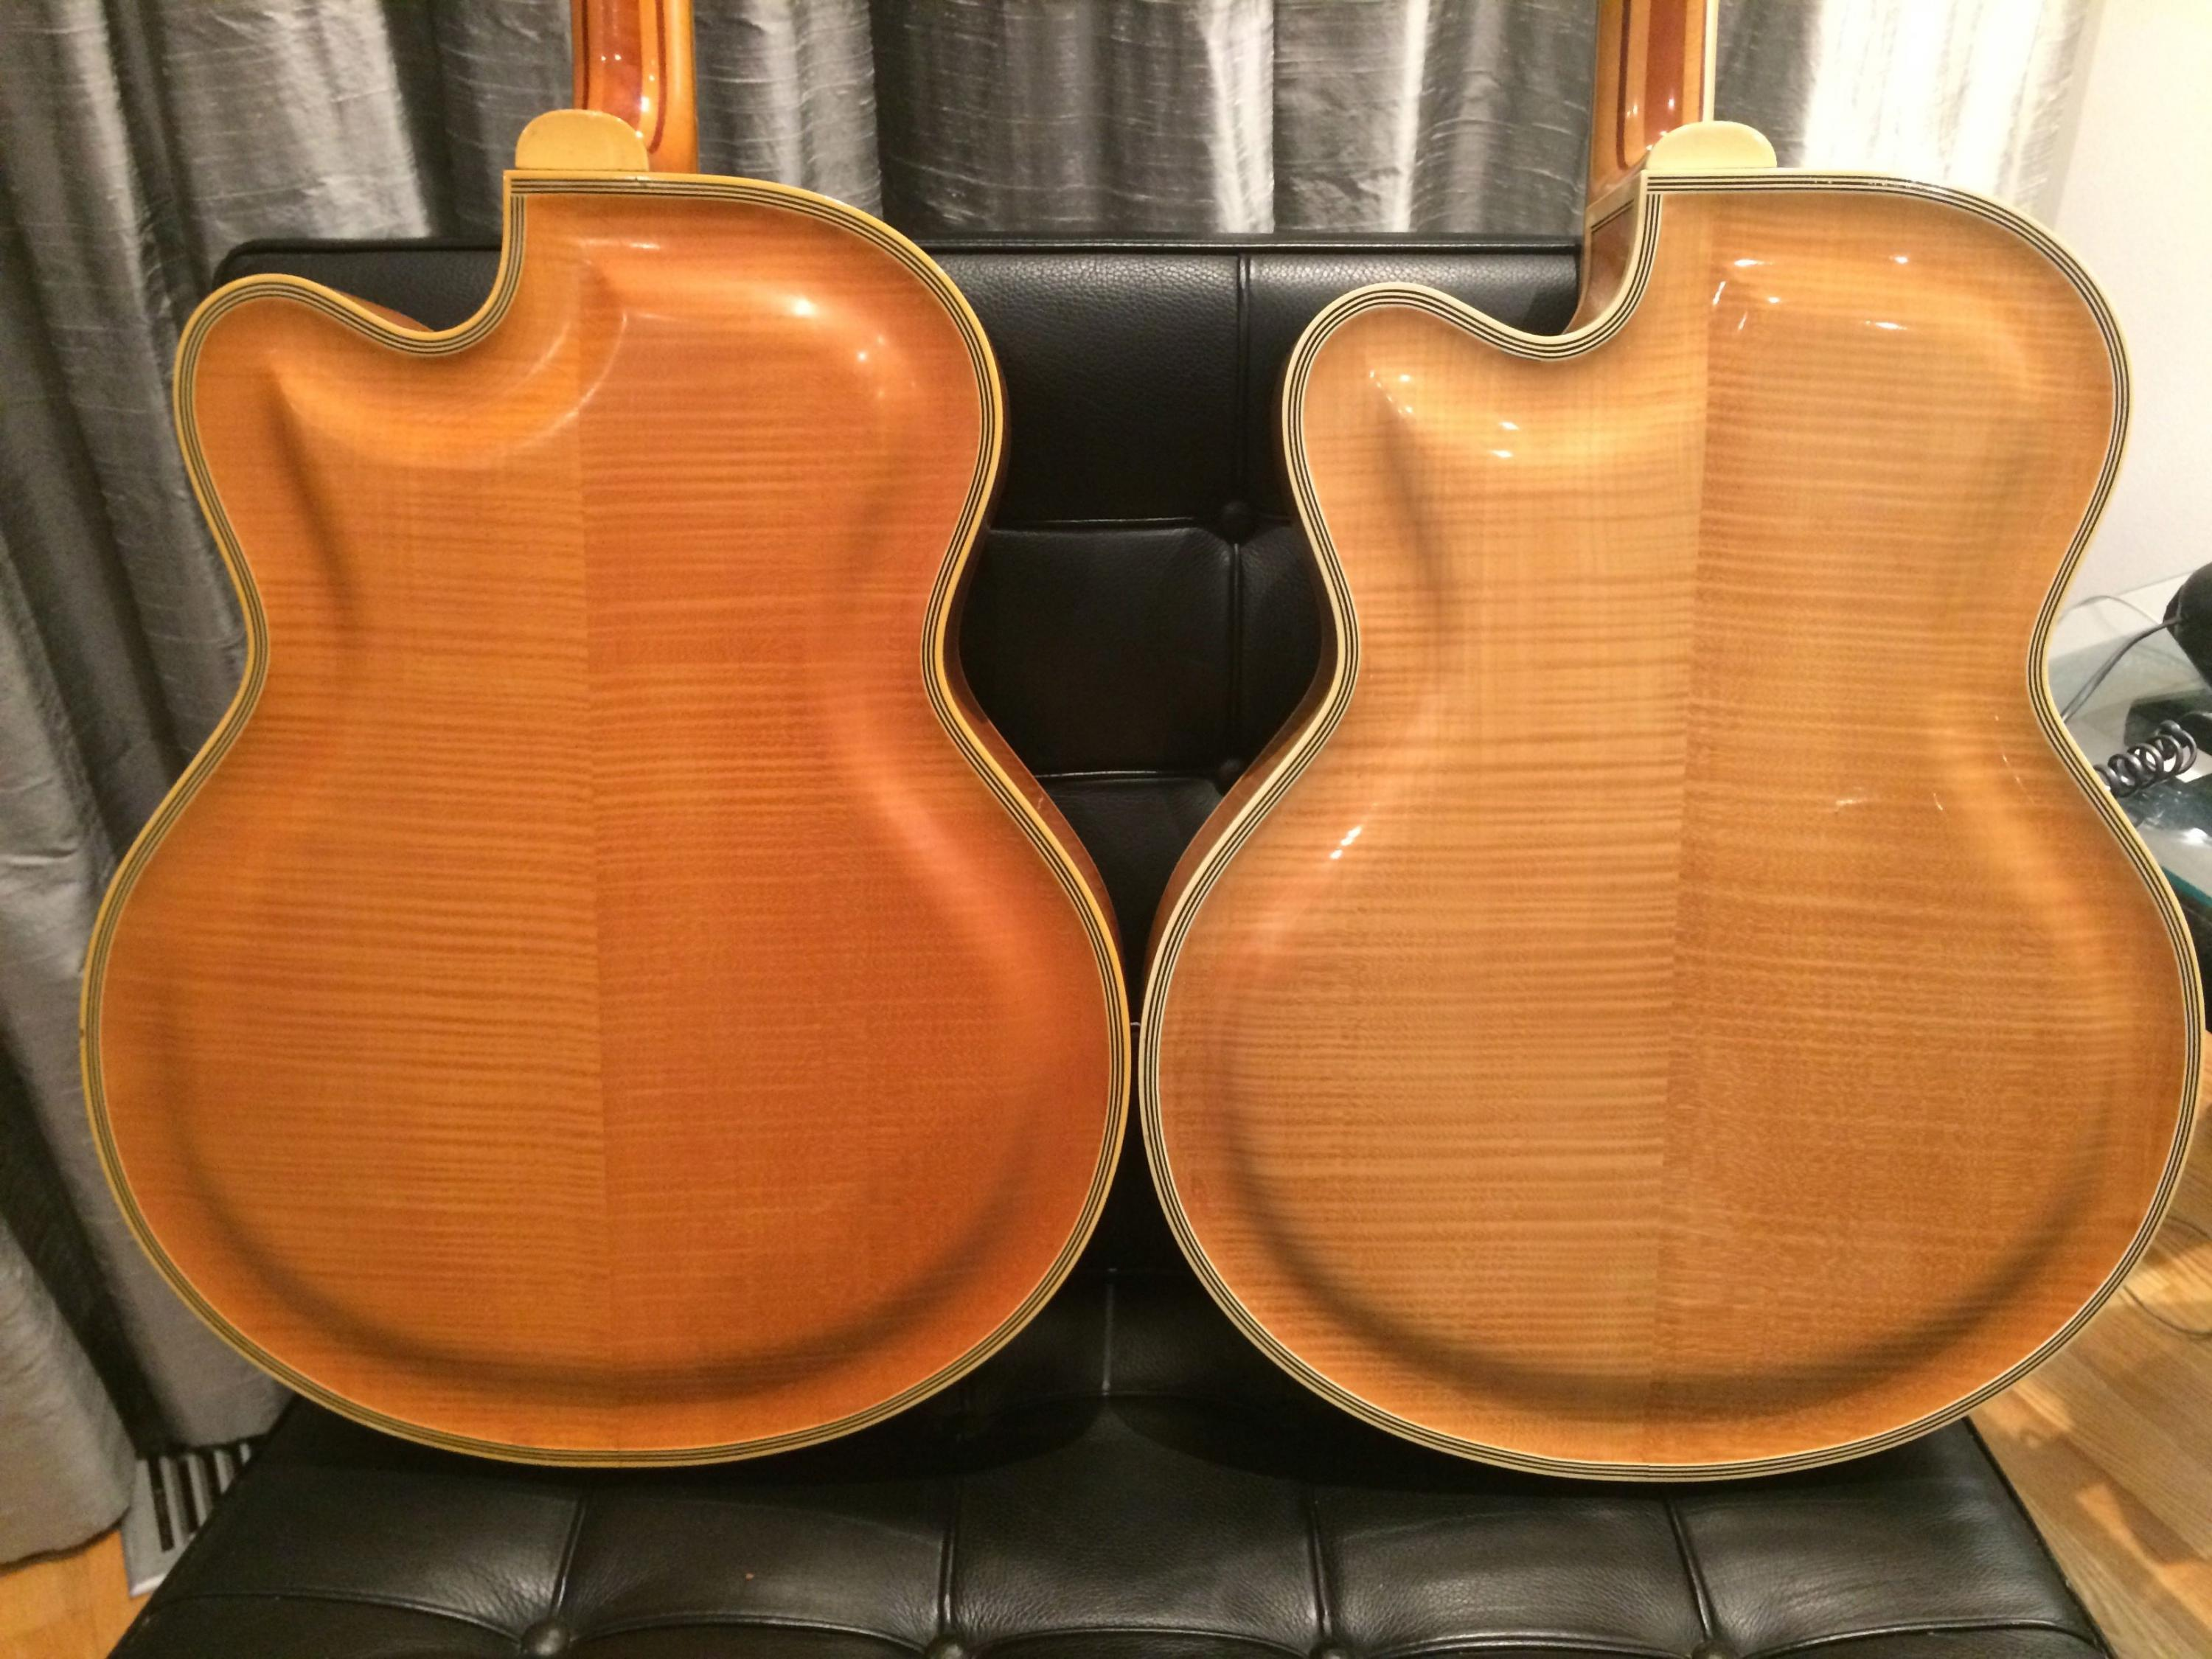 Vintage German Archtops-super-backsx2_0431-jpg